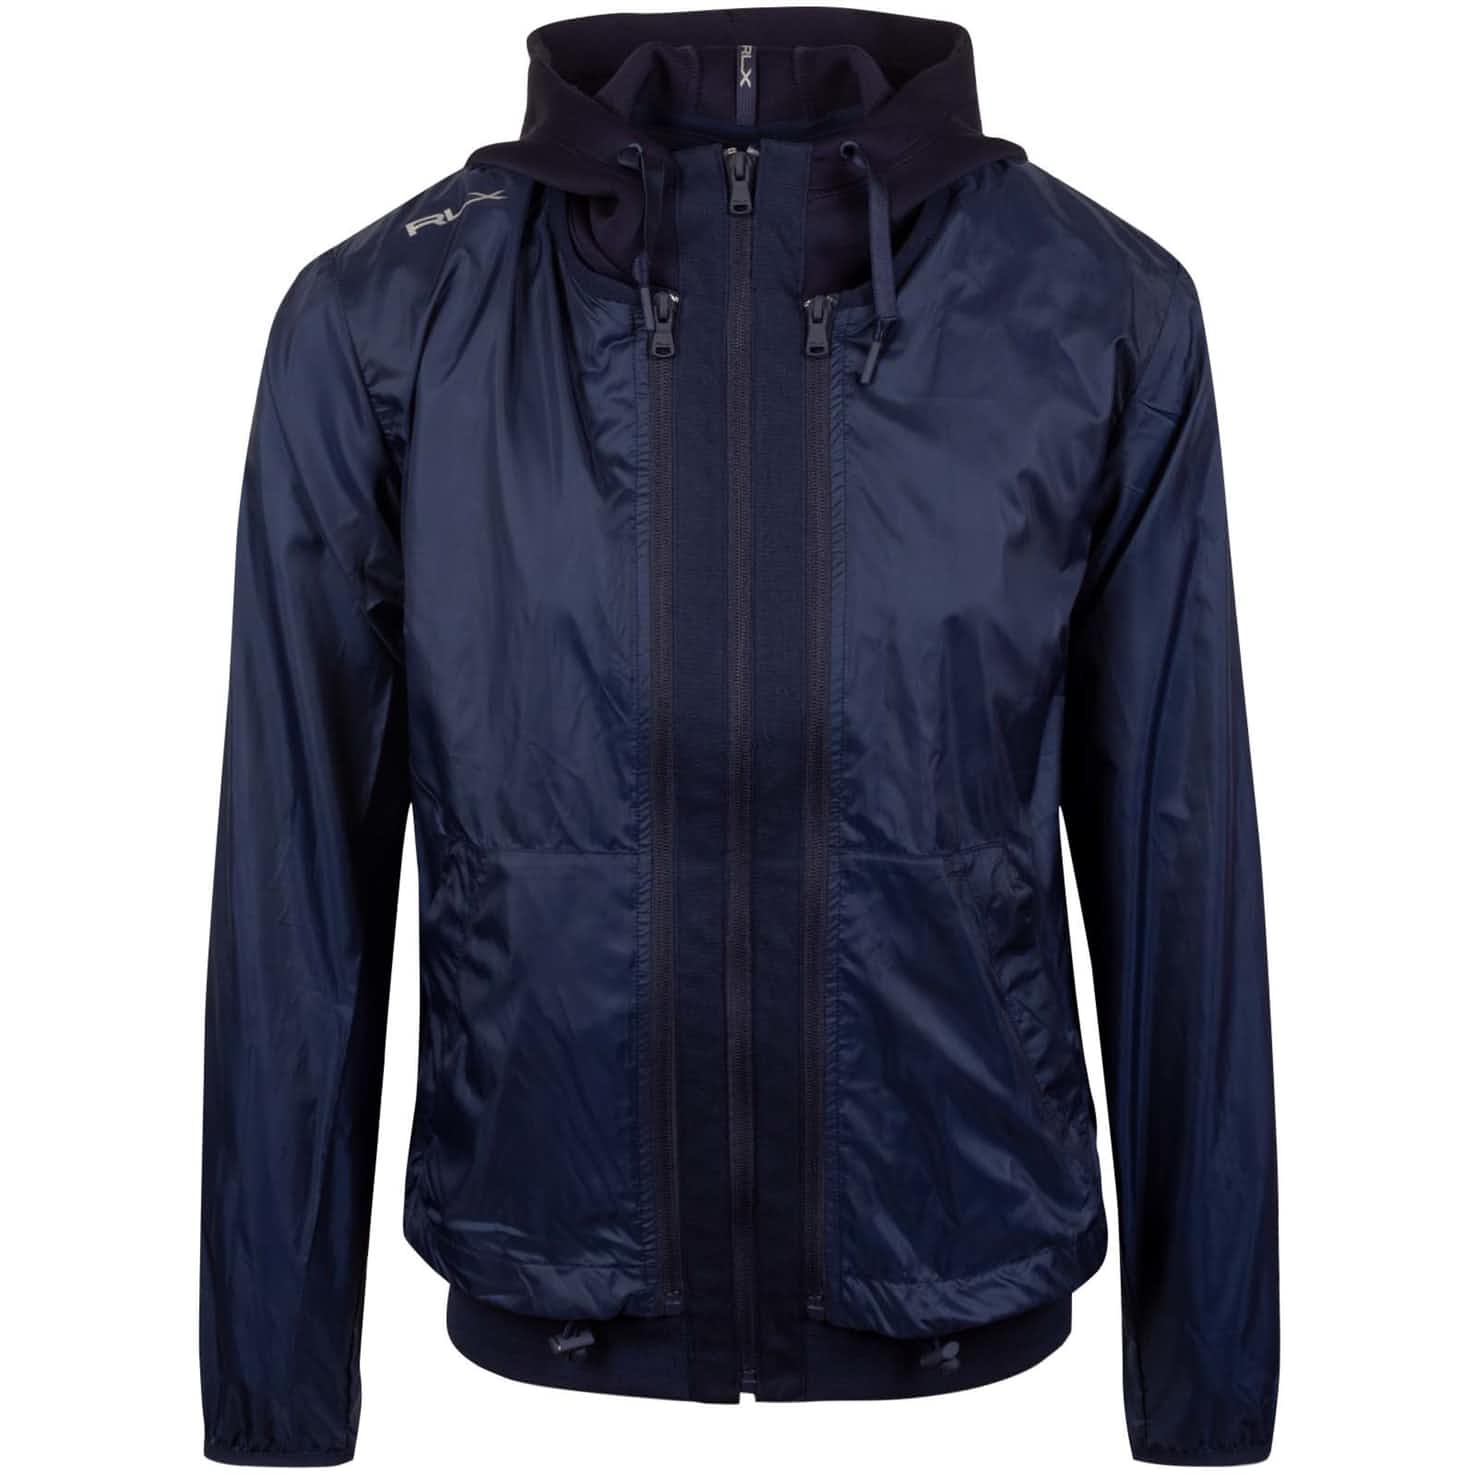 Womens Hybrid Spacer Jacket Royal Navy - SS20